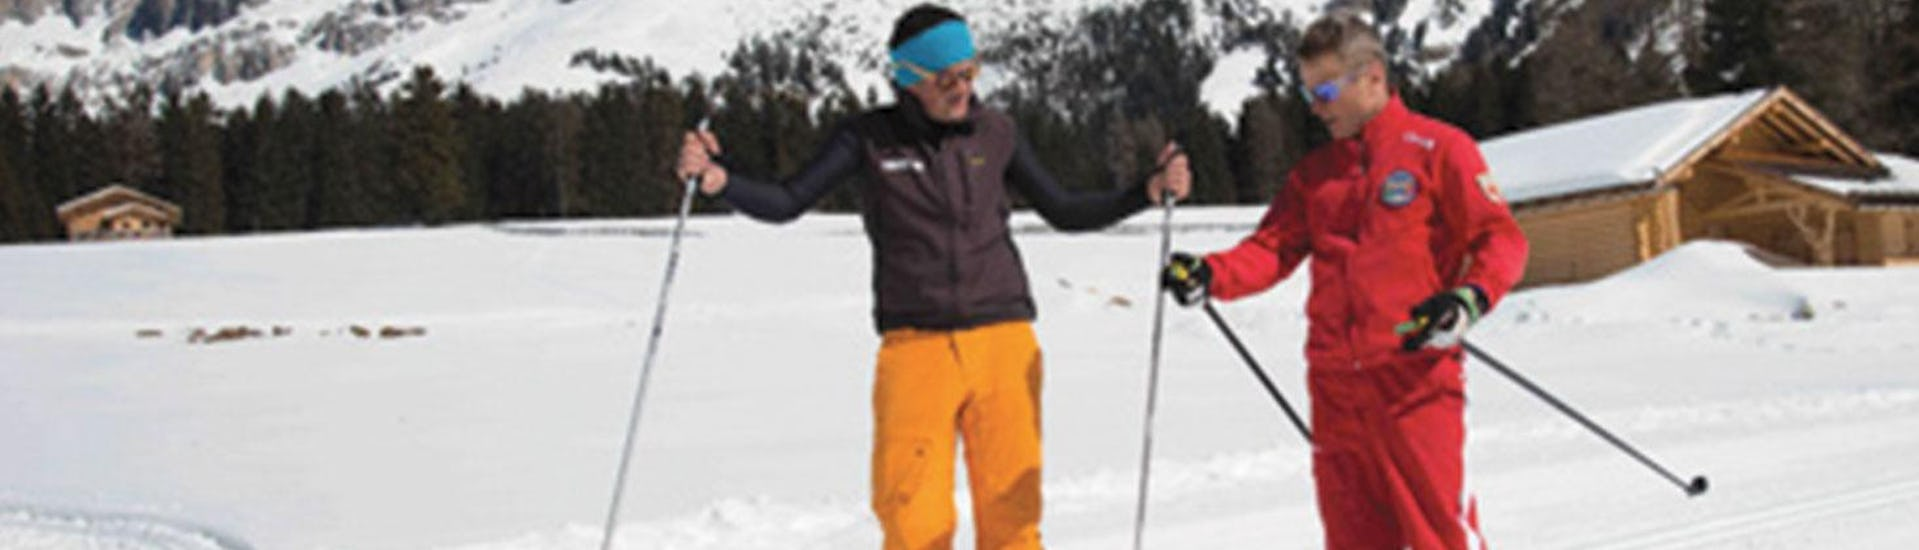 A cross-country skiing instructor from Carezza Skischool is explaining his pupil how to improve the technique during Private Cross Country Skiing Lessons - All Levels.